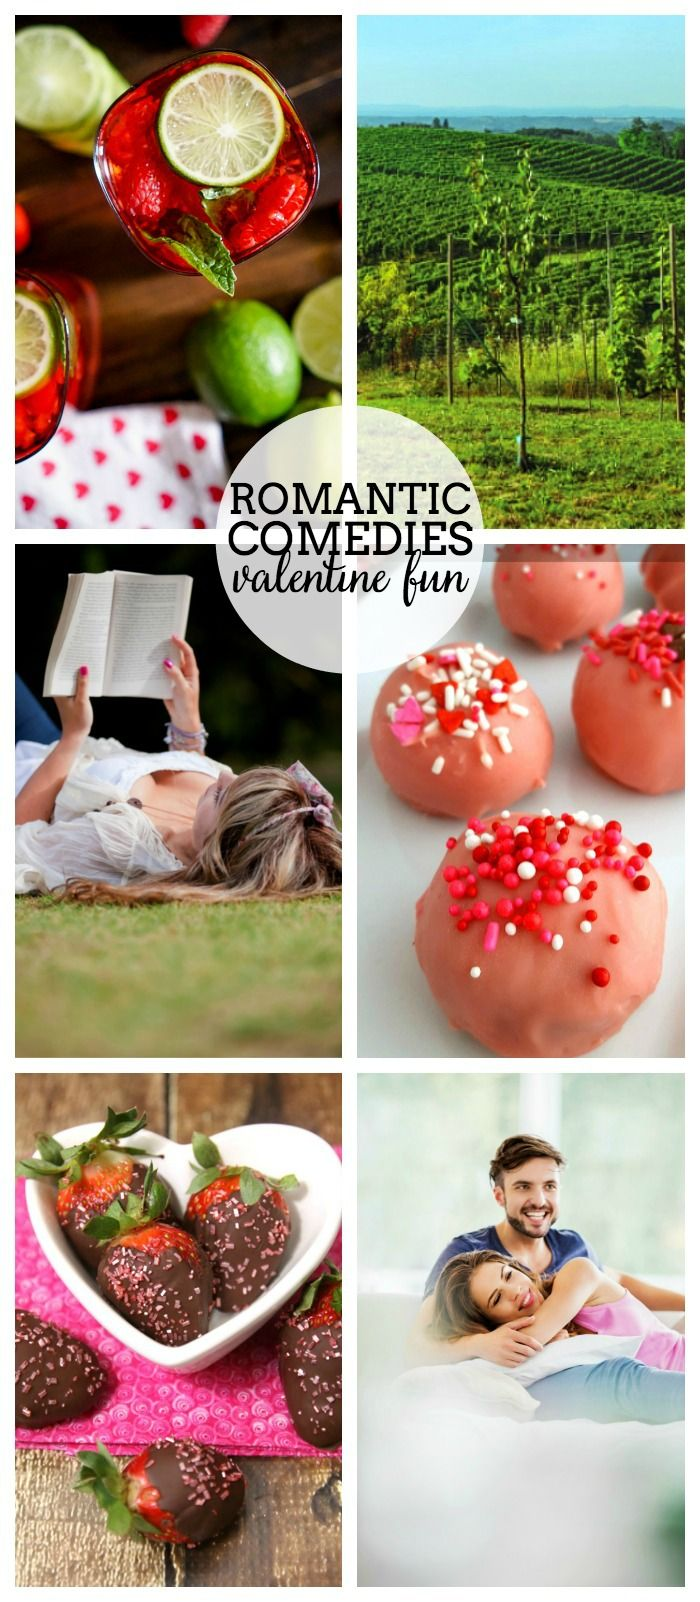 Celebrate your love of Romantic Comedies - These posts are inspired by your favorite romantic comedies and are perfect Valentine's Day ideas!